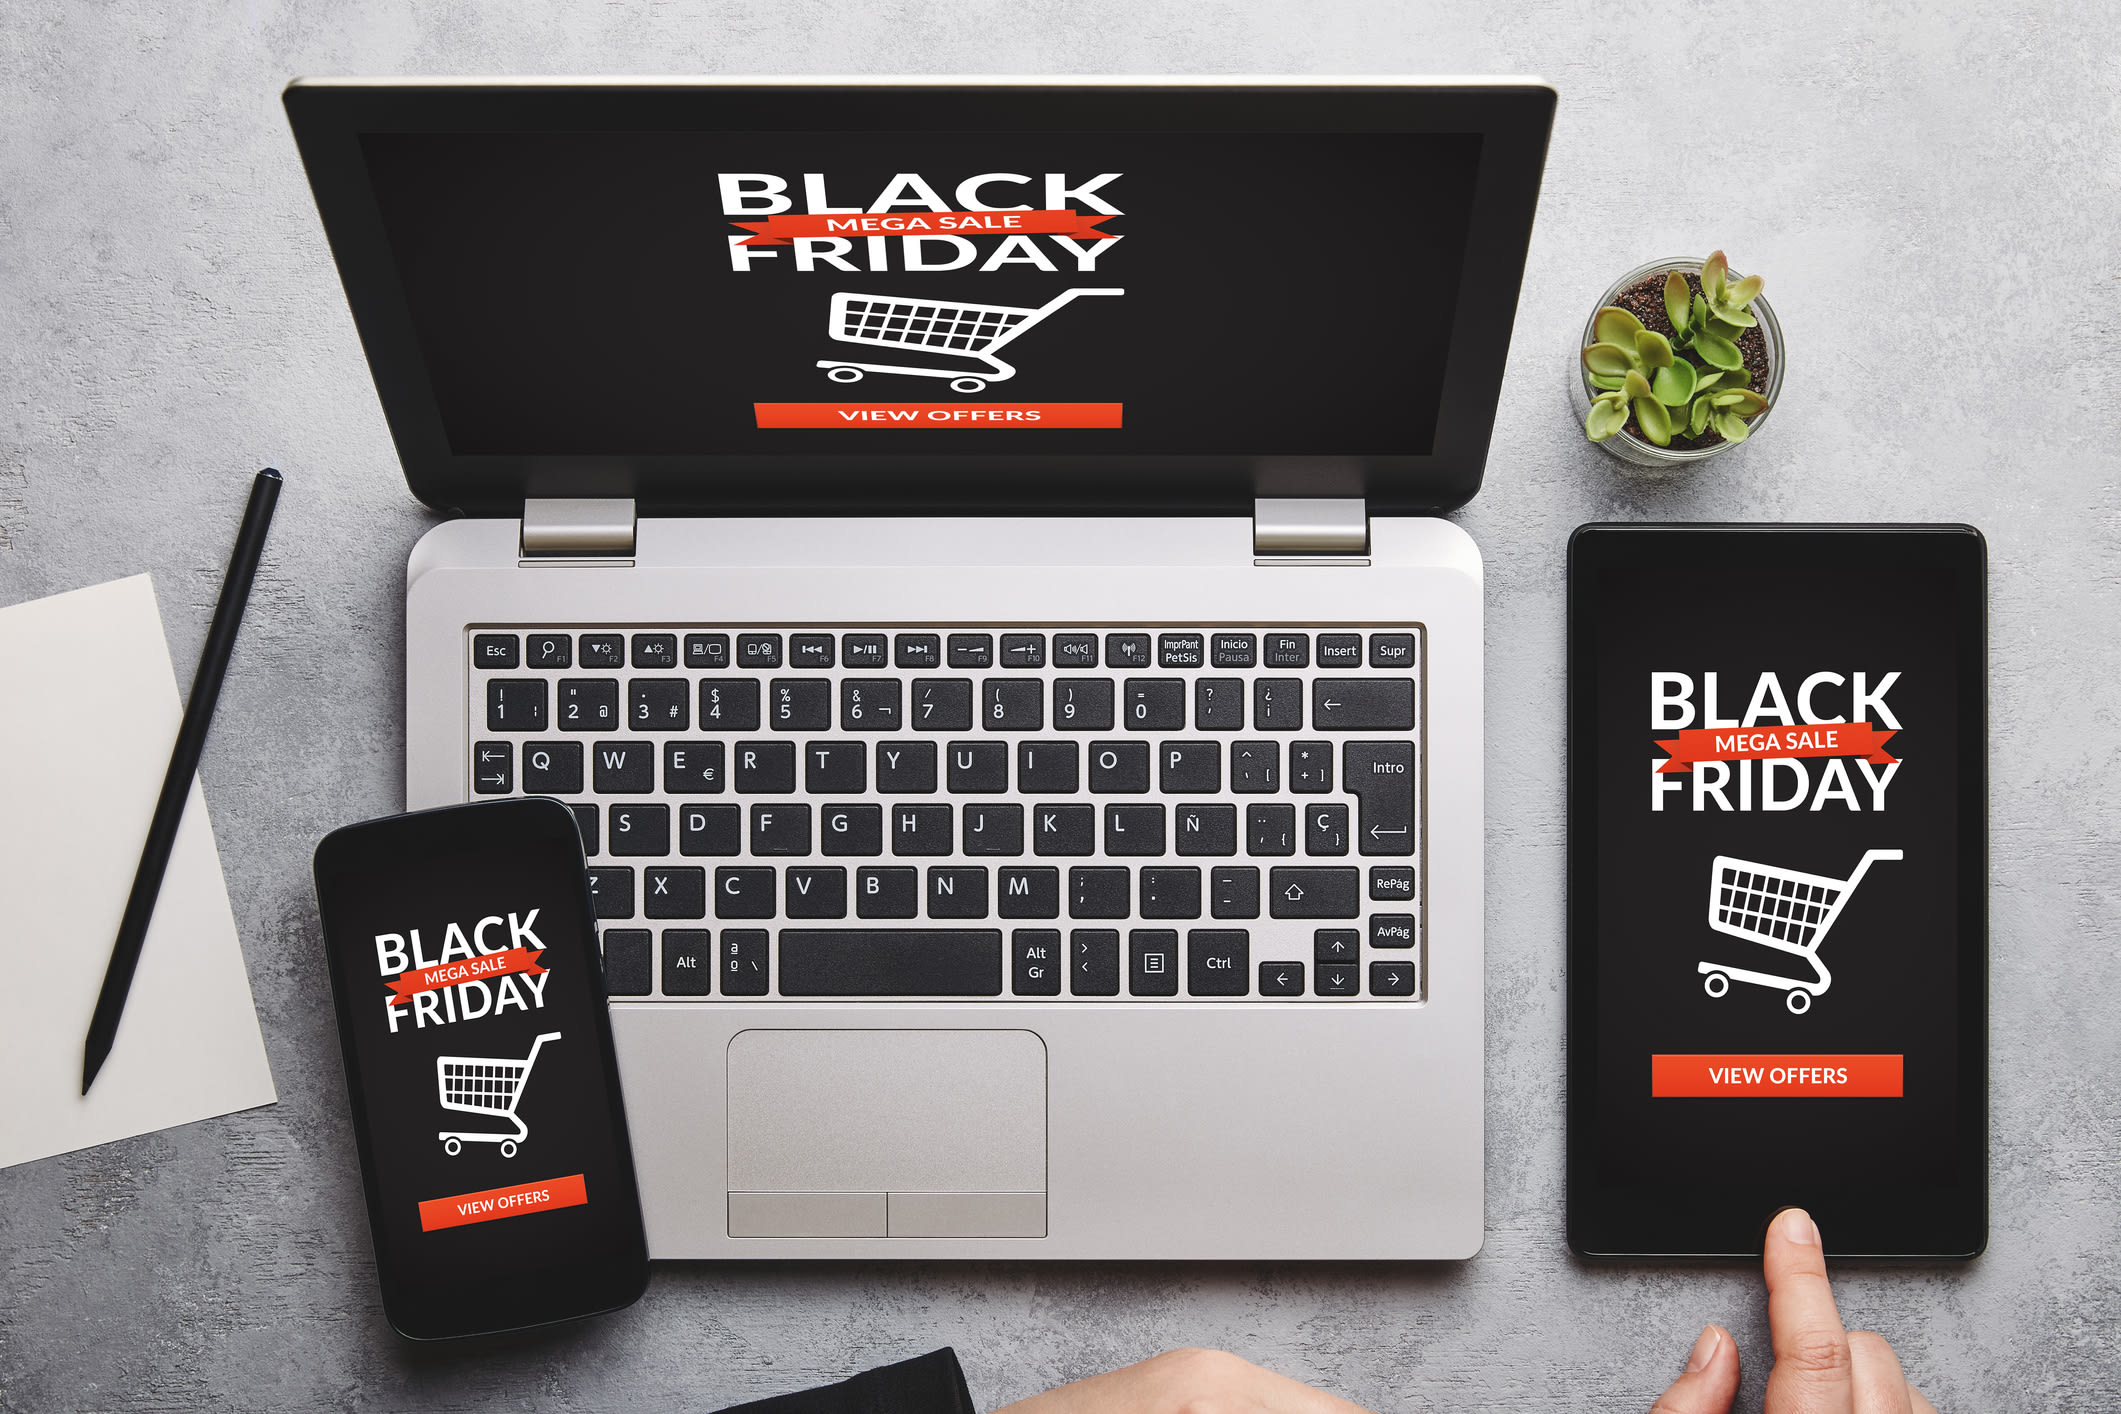 Black Friday ads on devices